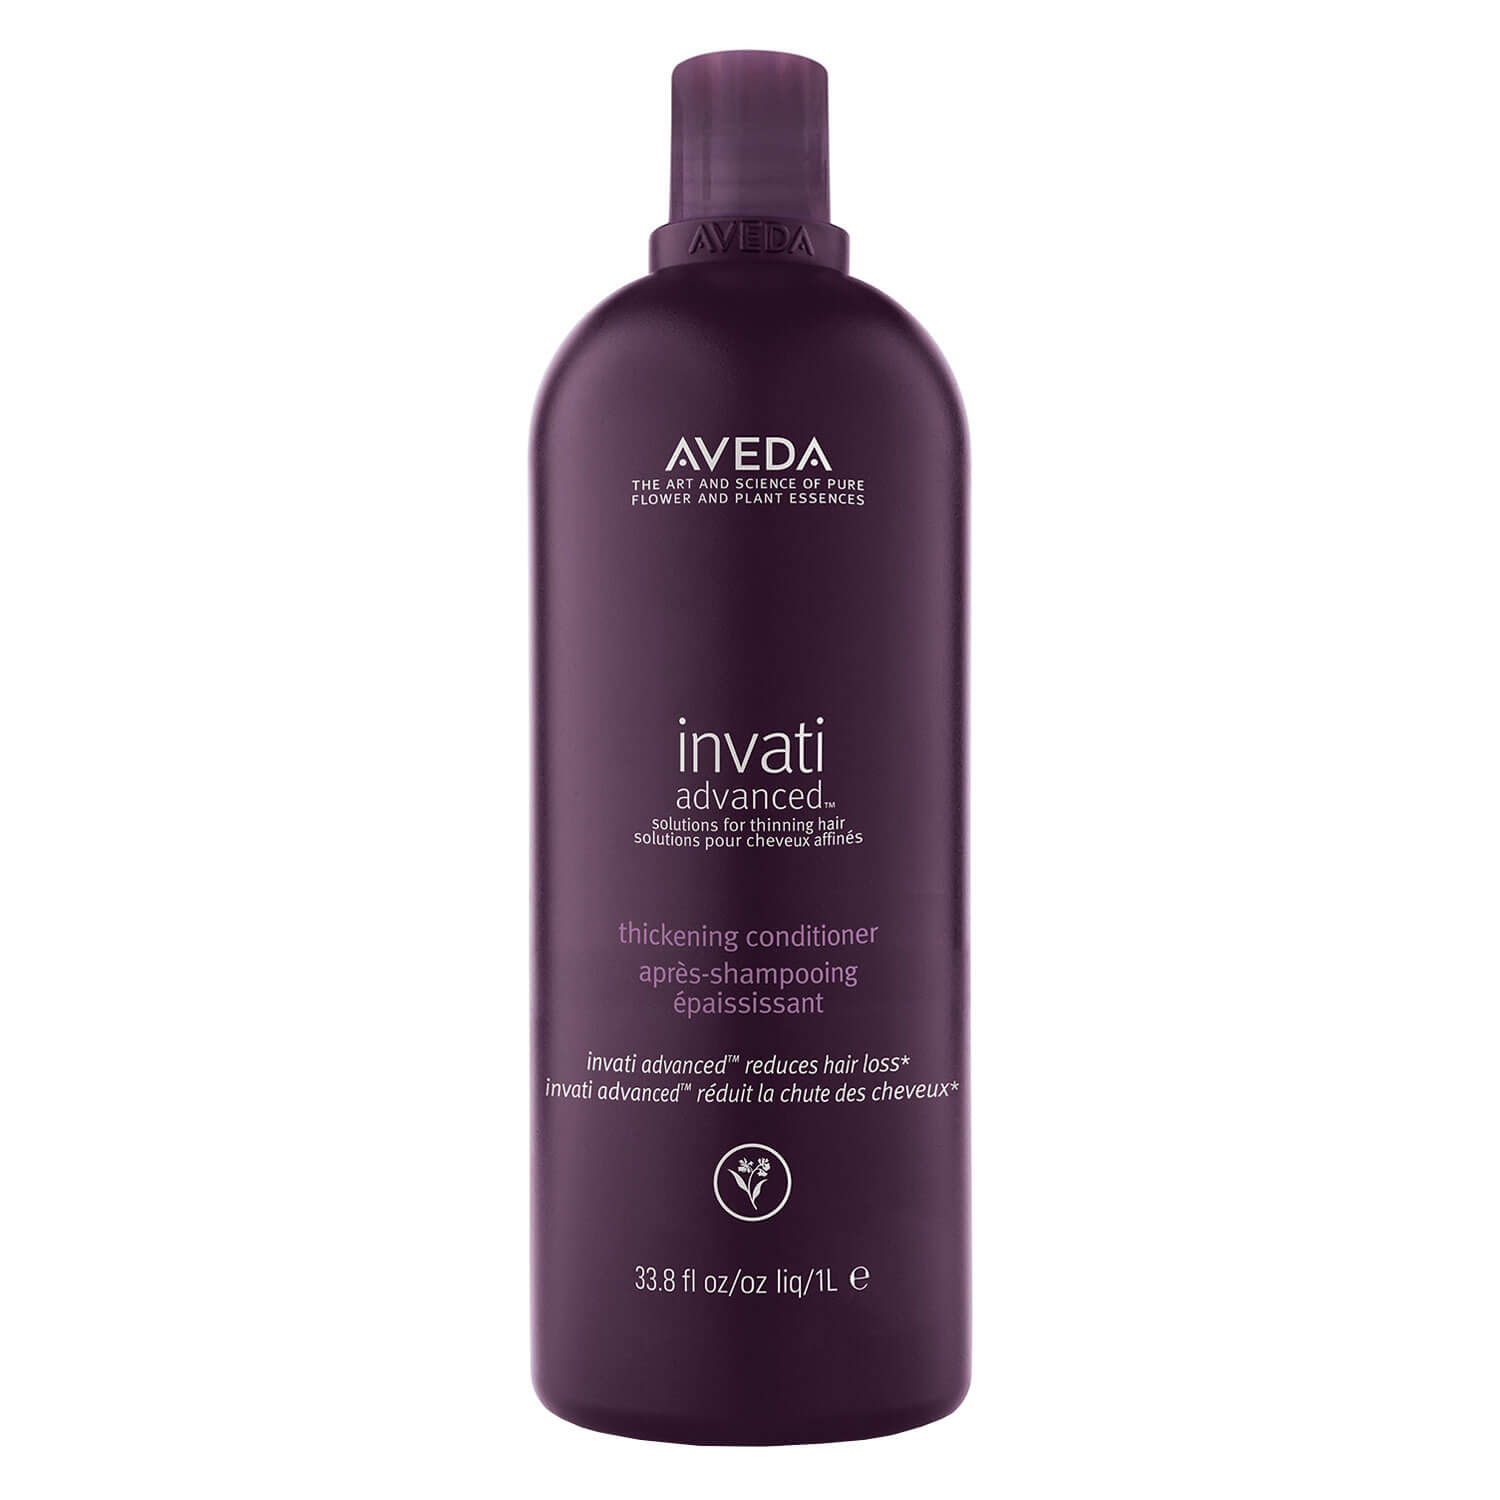 invati advanced - thickening conditioner